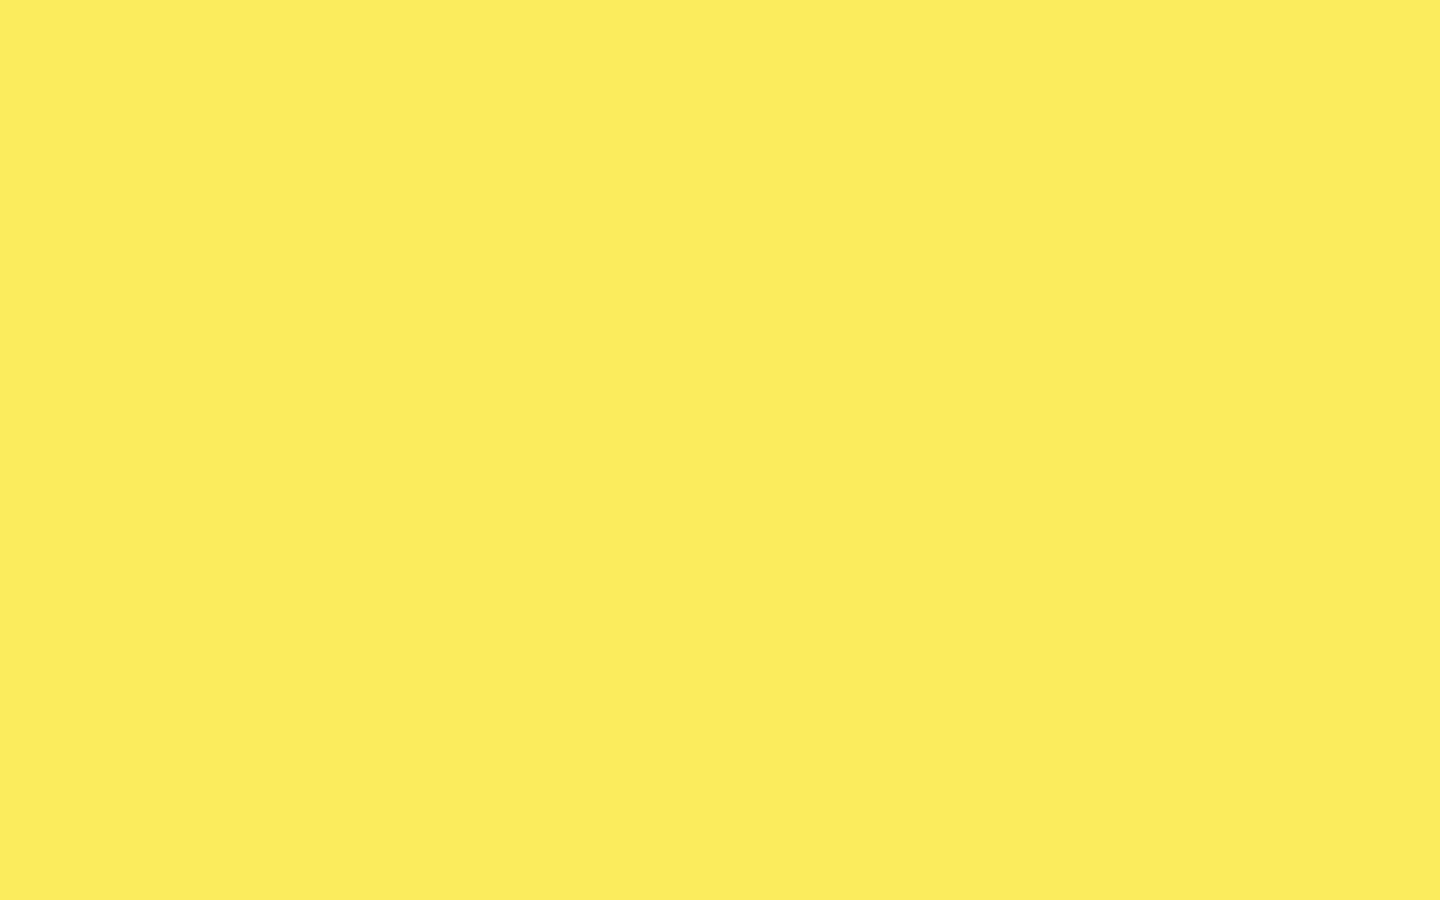 1440x900 Maize Solid Color Background